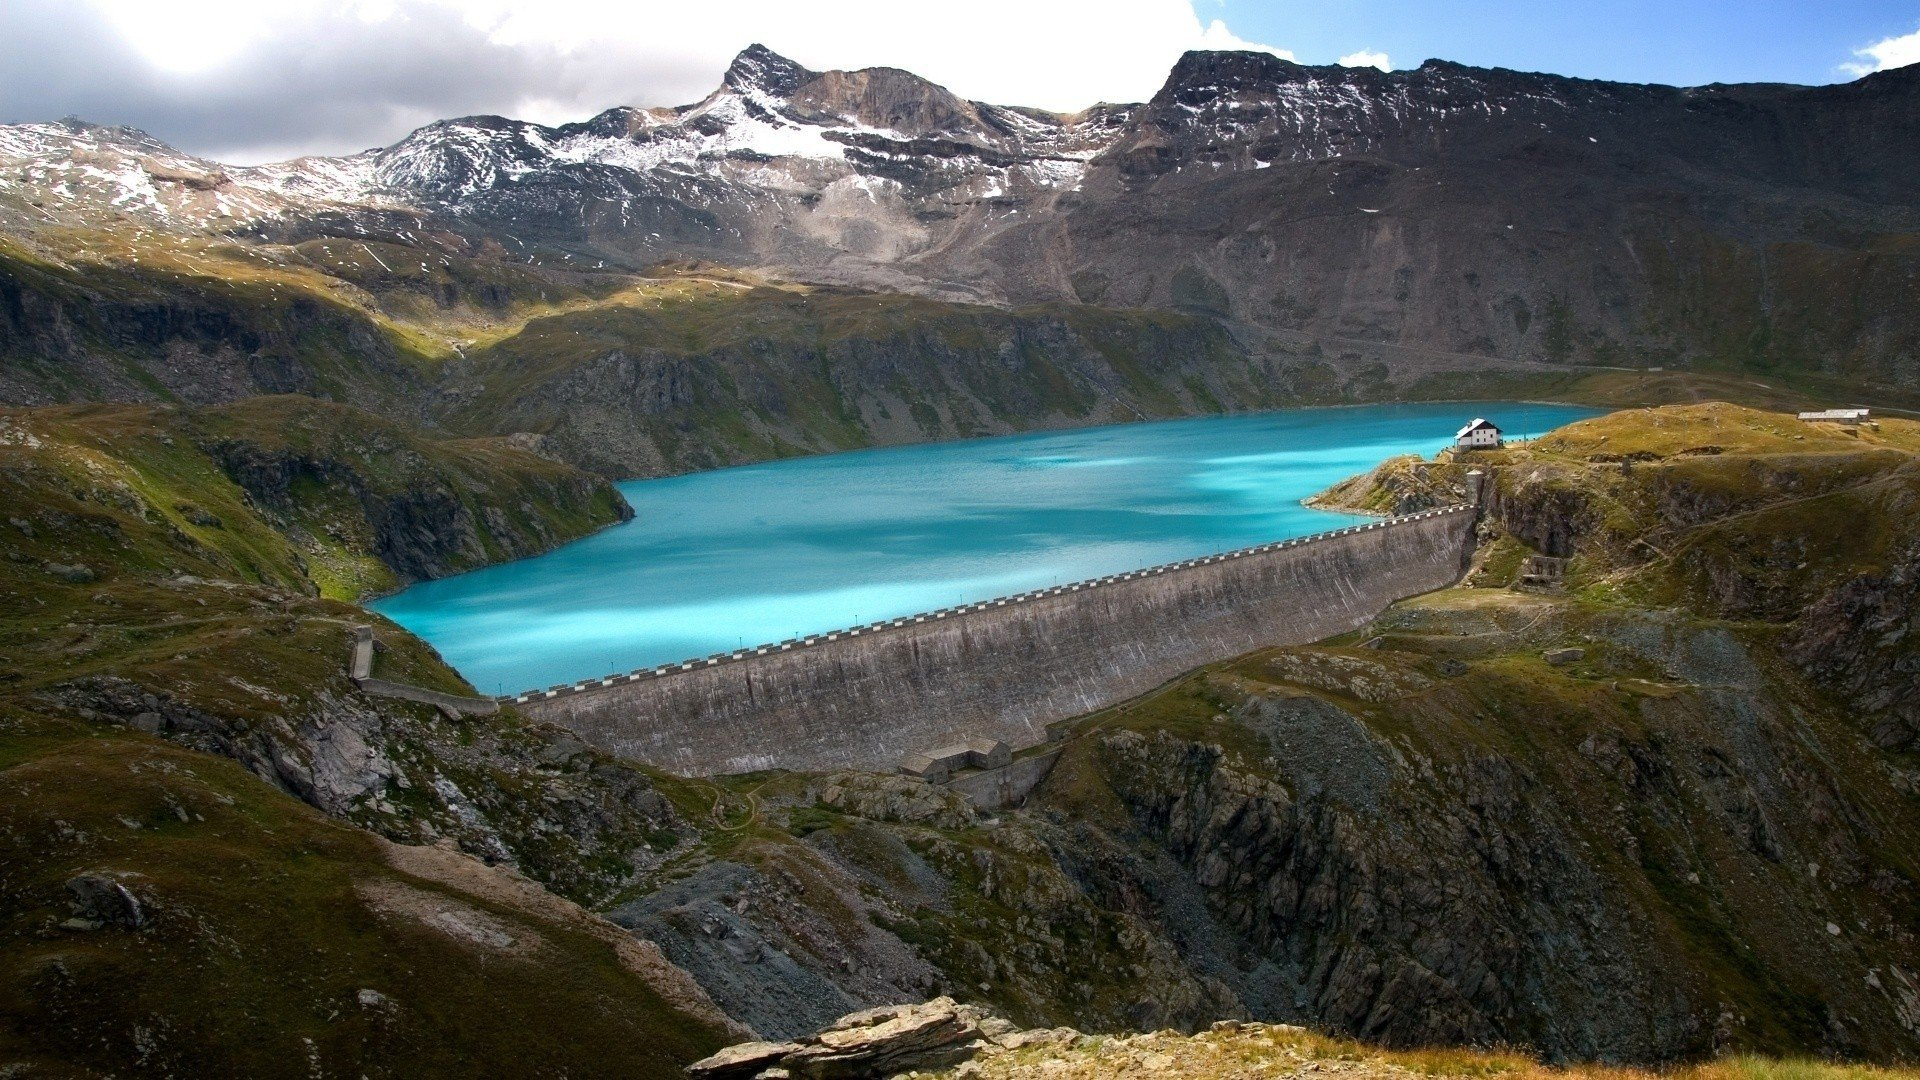 Dam Wallpapers and Background Images   stmednet 1920x1080